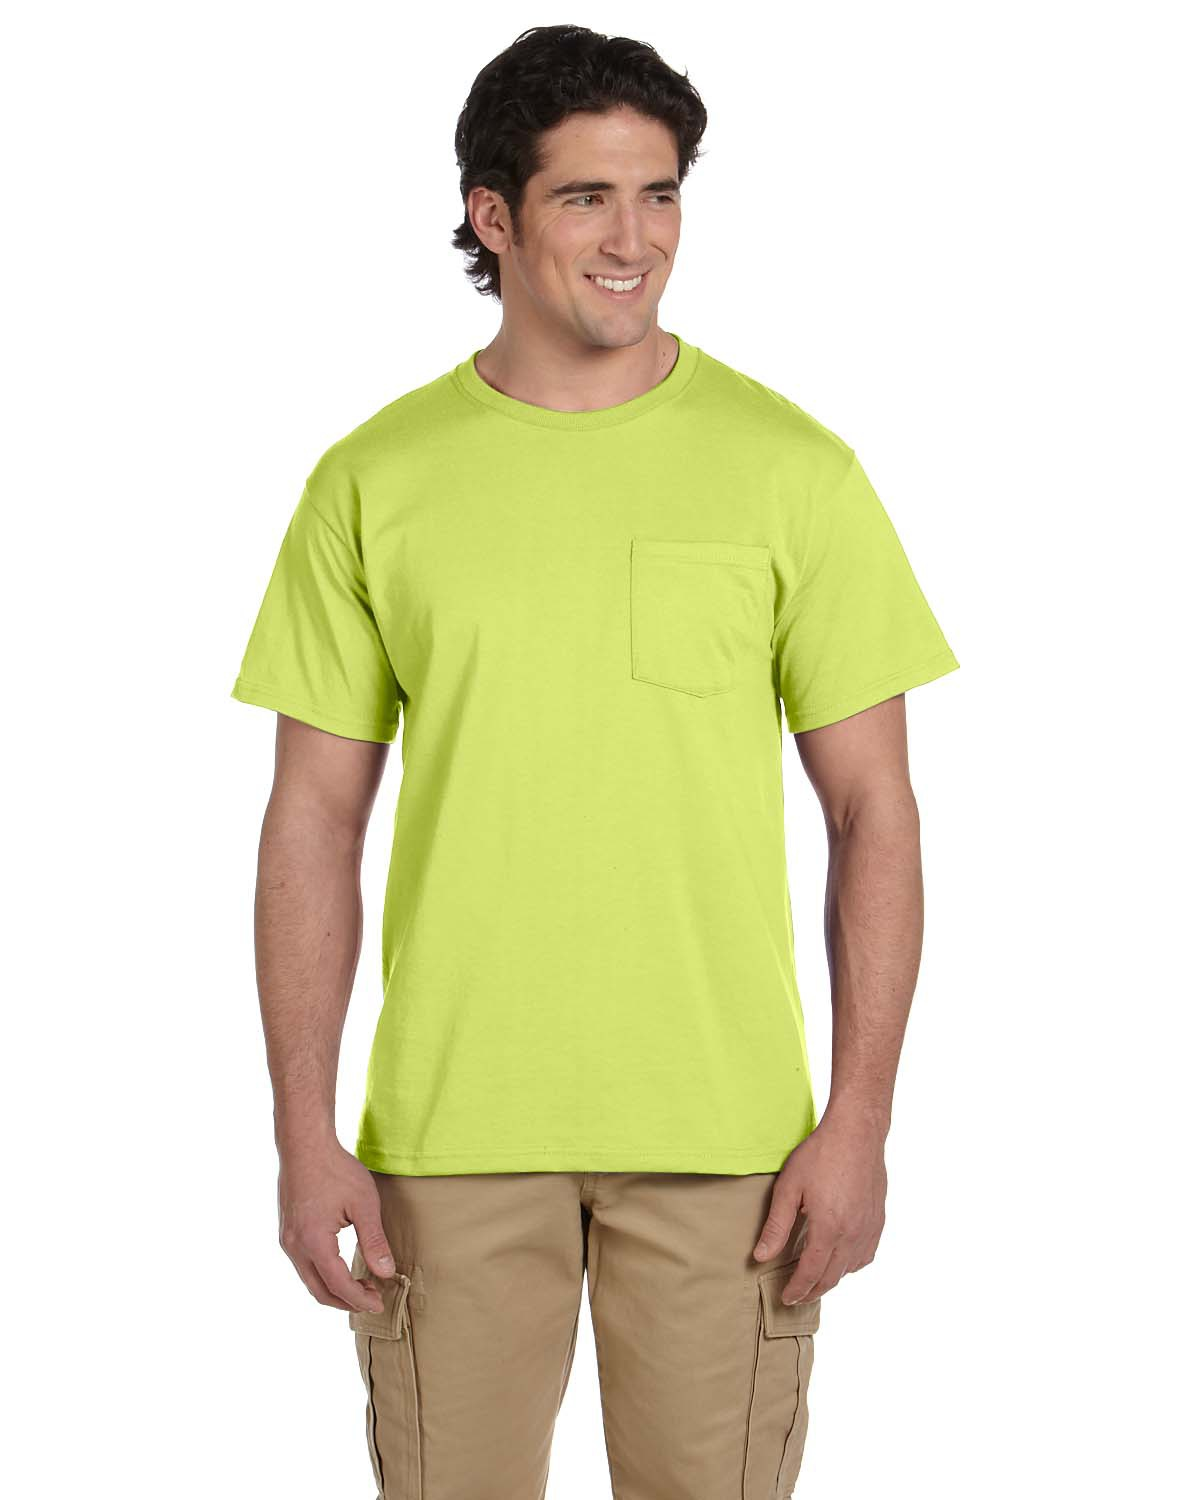 click to view SAFETY GREEN